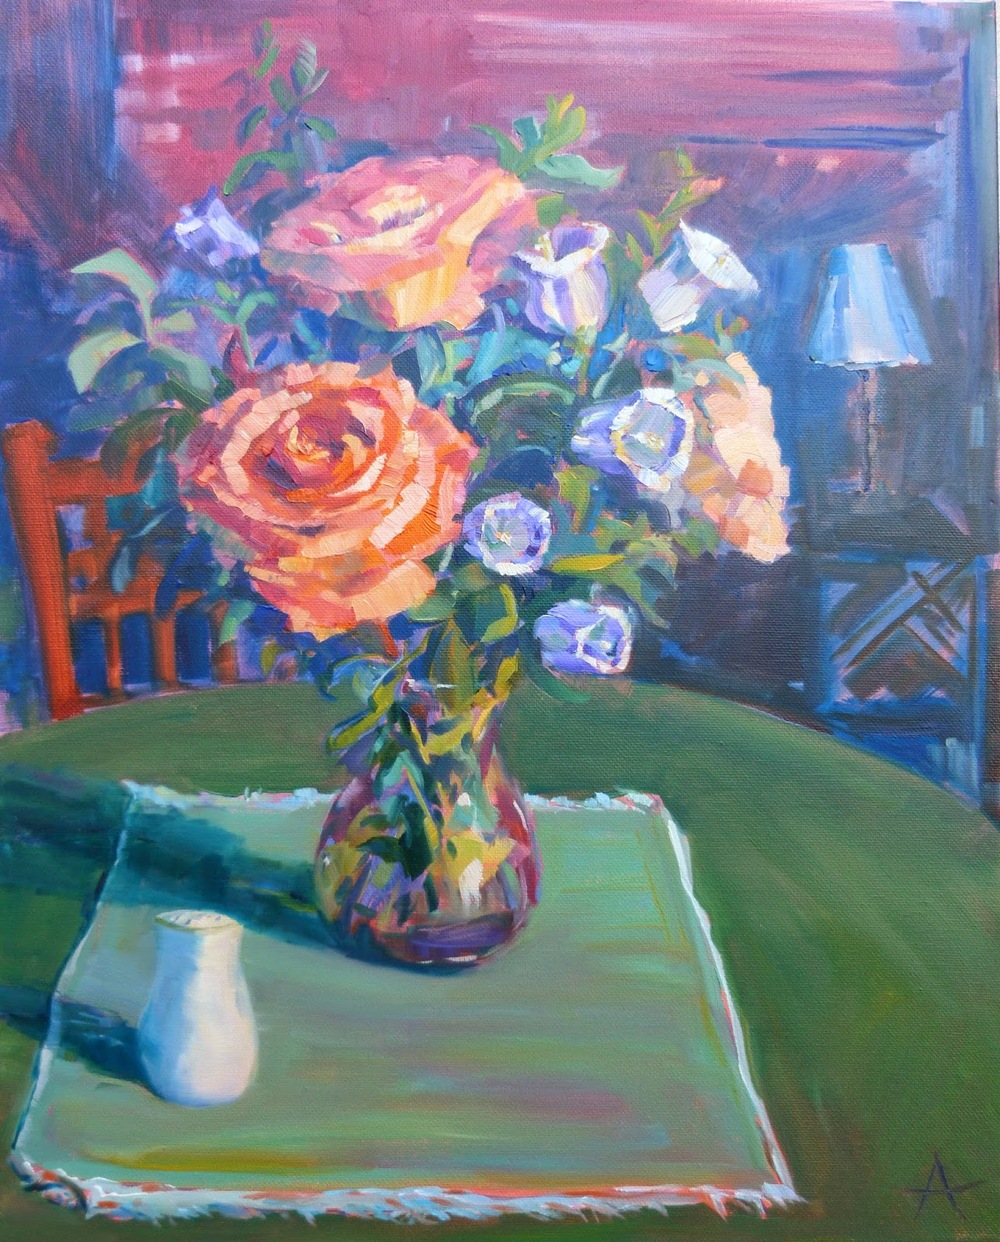 "SOLD, Coral Roses and Bellflowers, Copyright 2014 Hirschten, Oil on Canvas, 16"" x 20"""